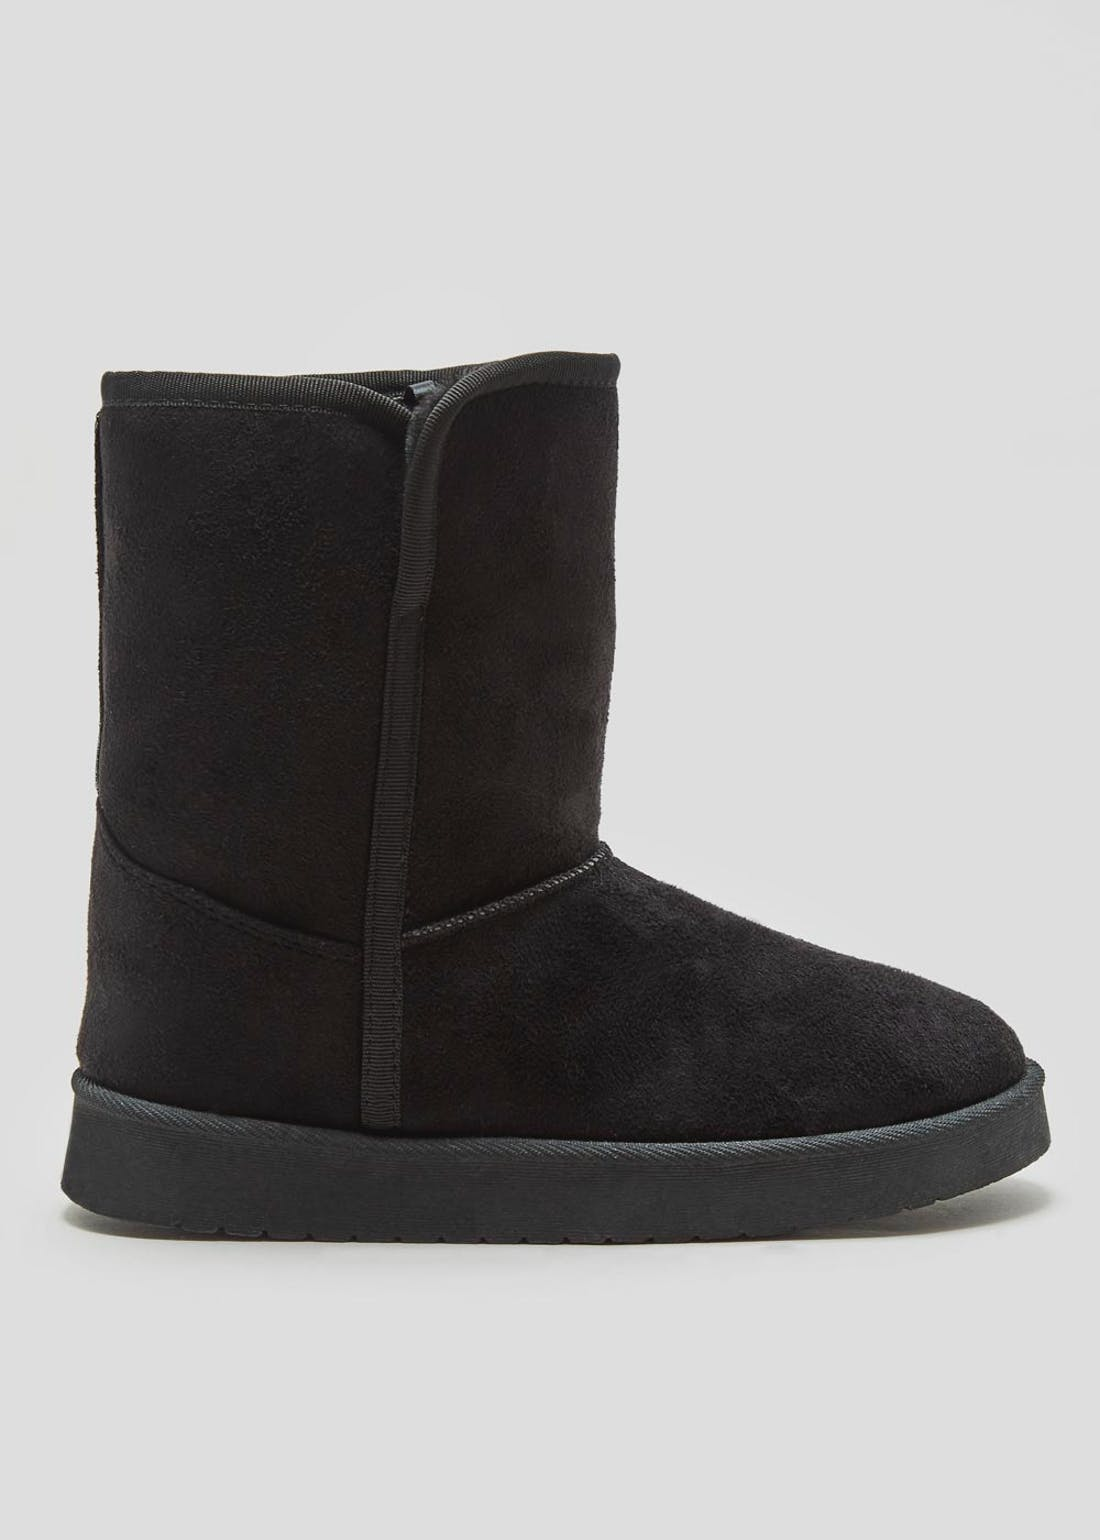 Black Snugg Boots